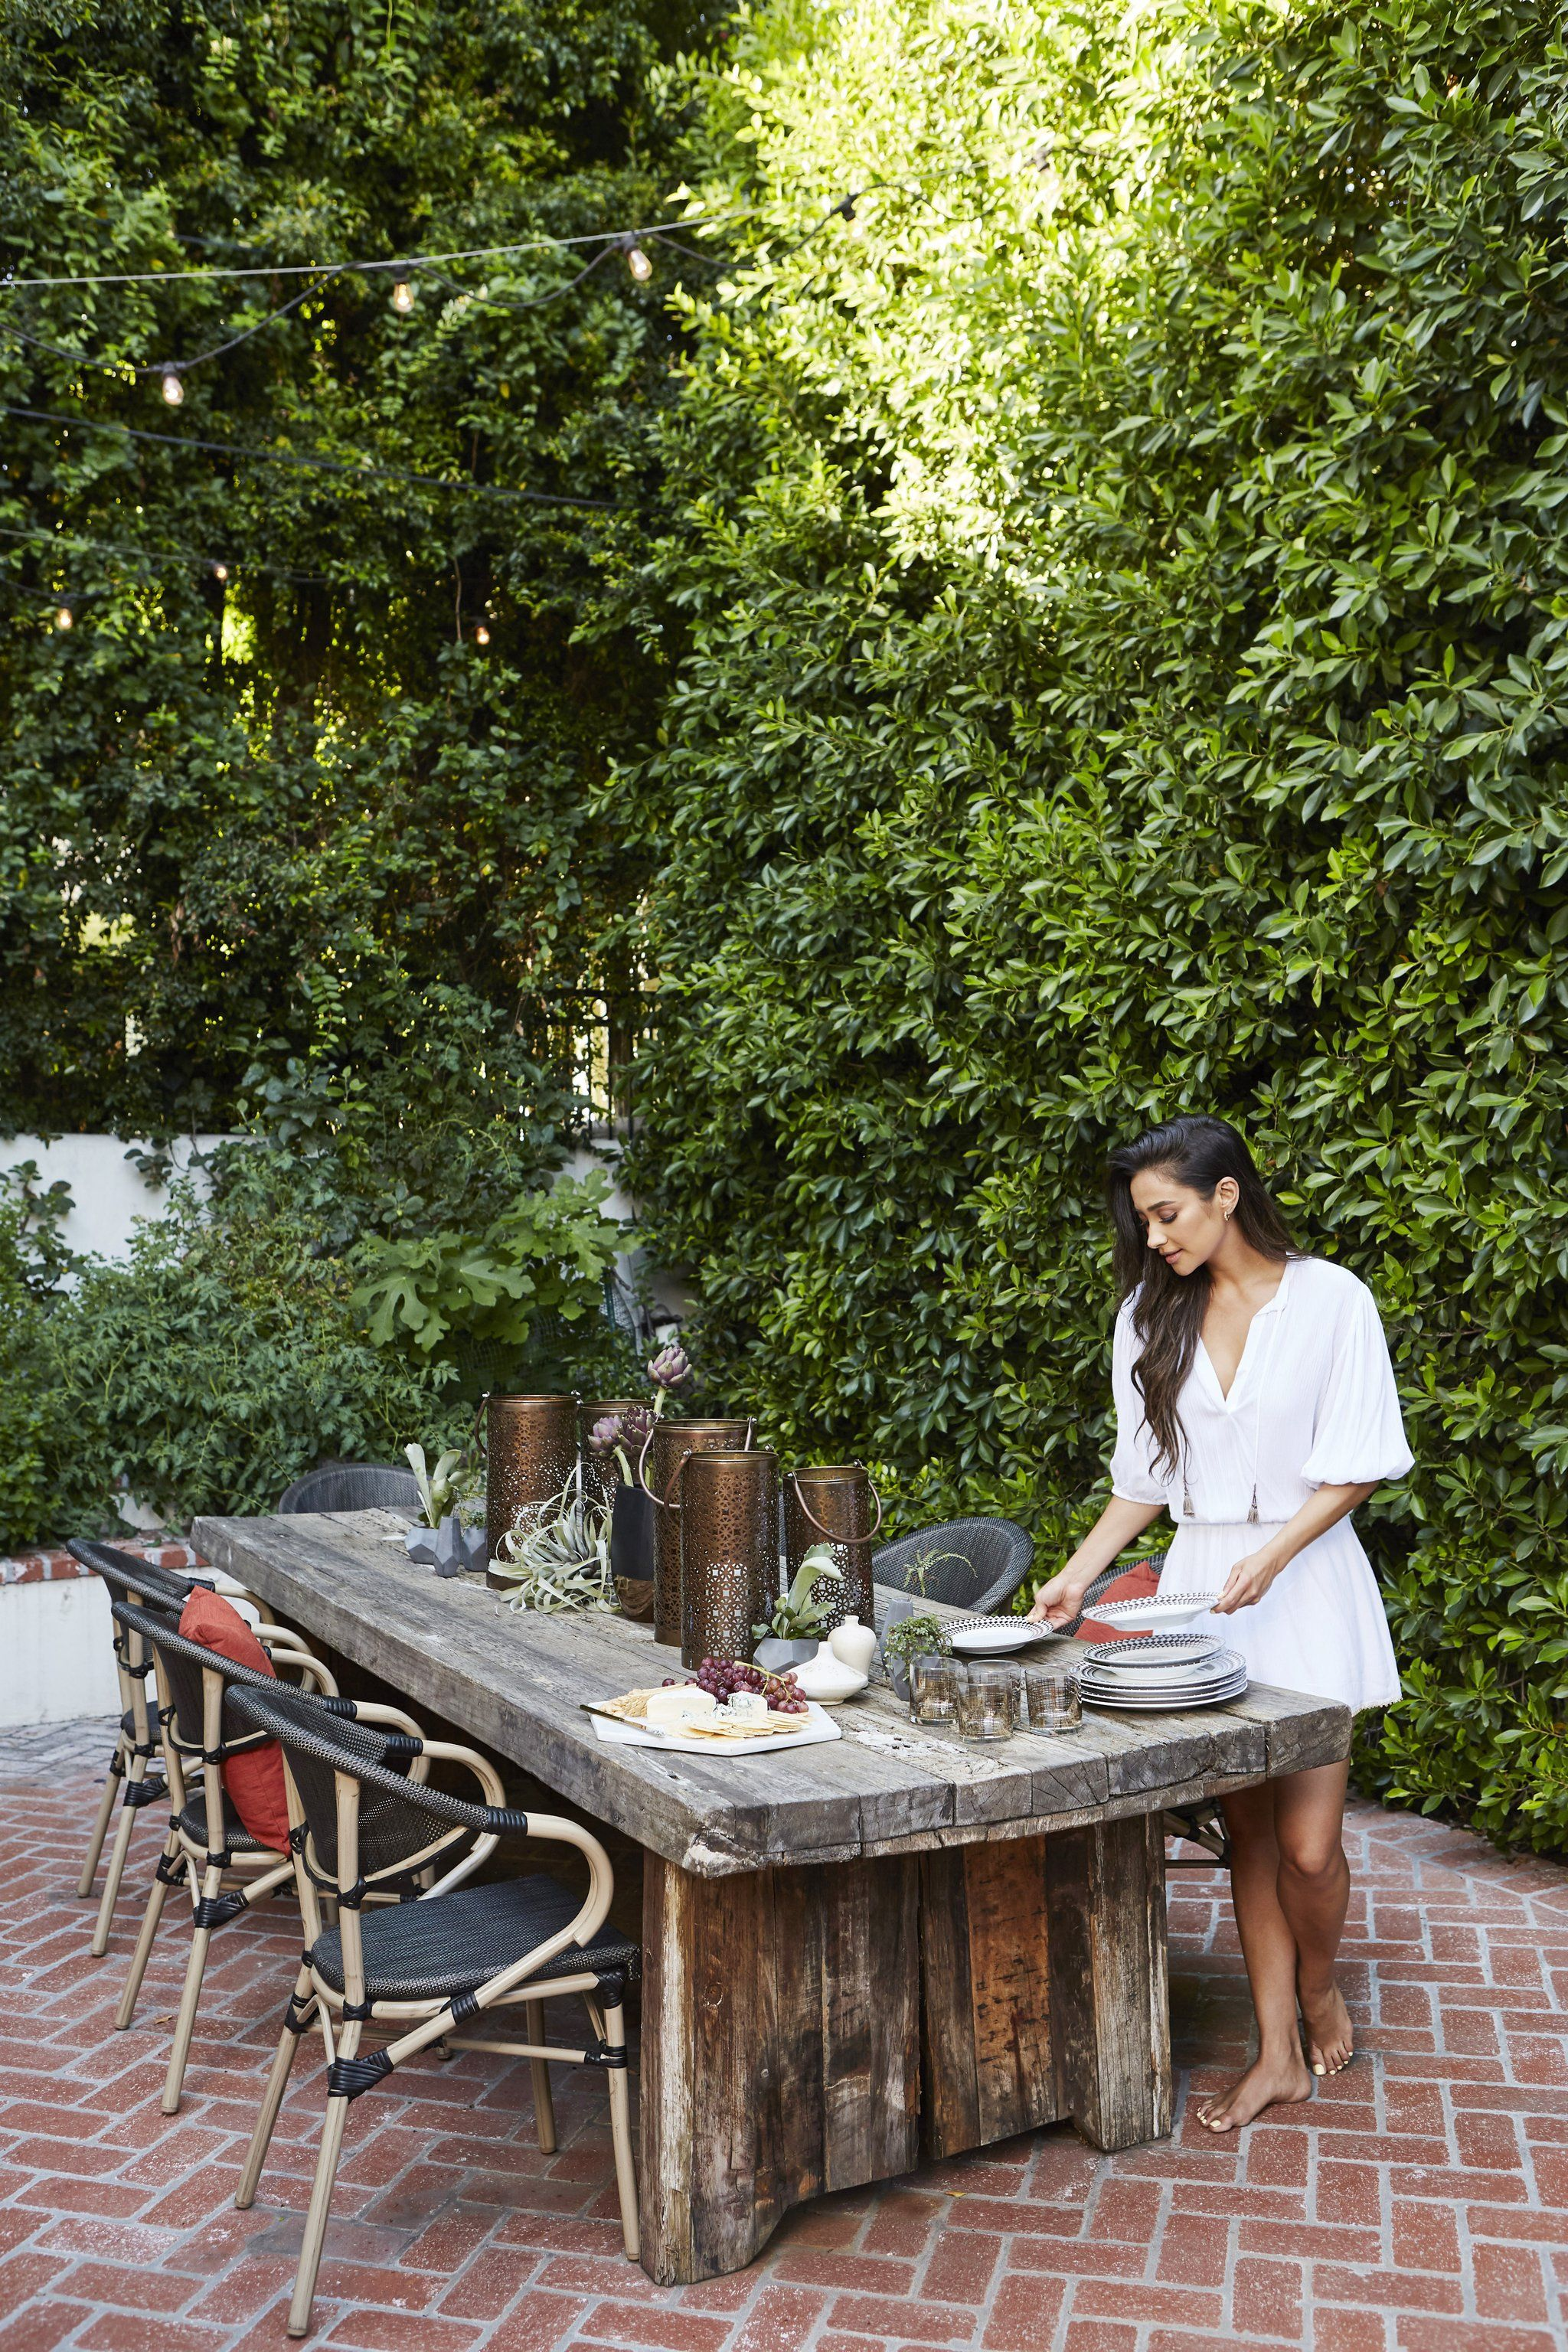 Amazing Pictures Of Shay Mitchellu0027s Yard | POPSUGAR Home